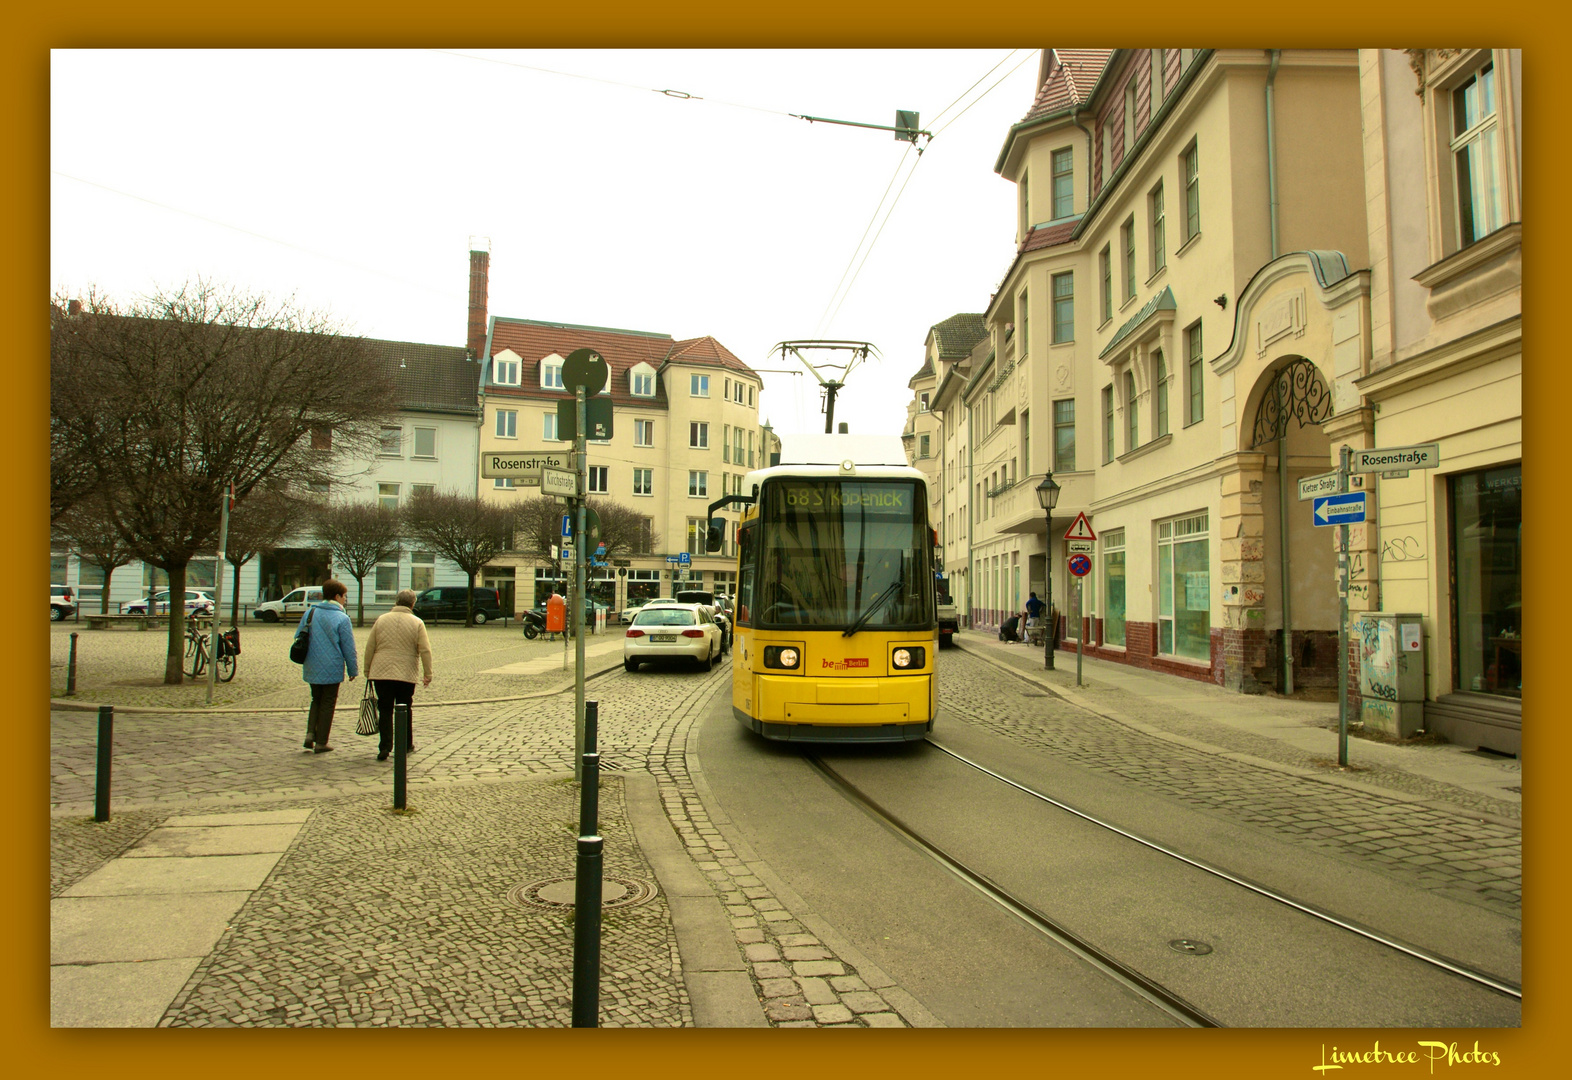 The Tram on Kietzer Strasse